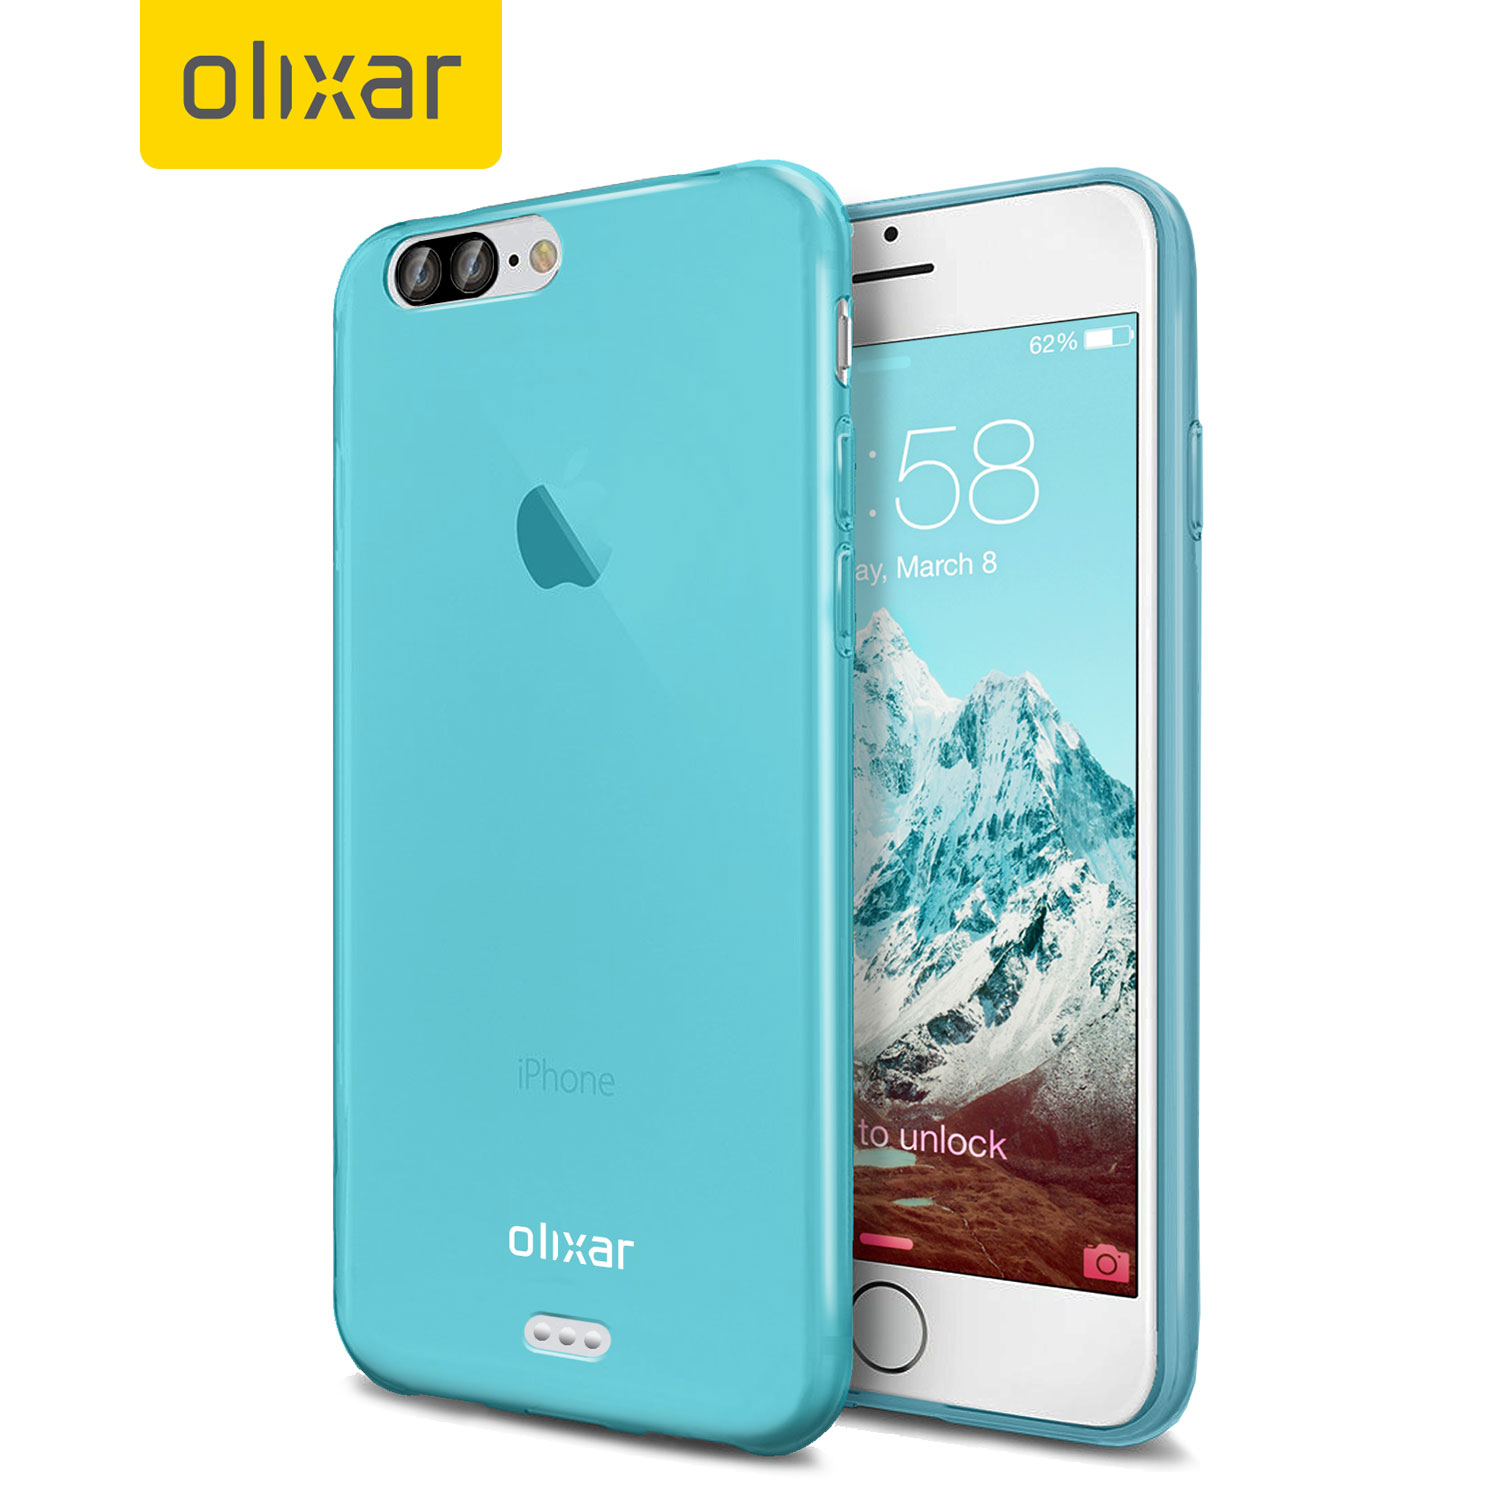 iPhone-7-and-7-Plus-case-images-by-Olixar (4)